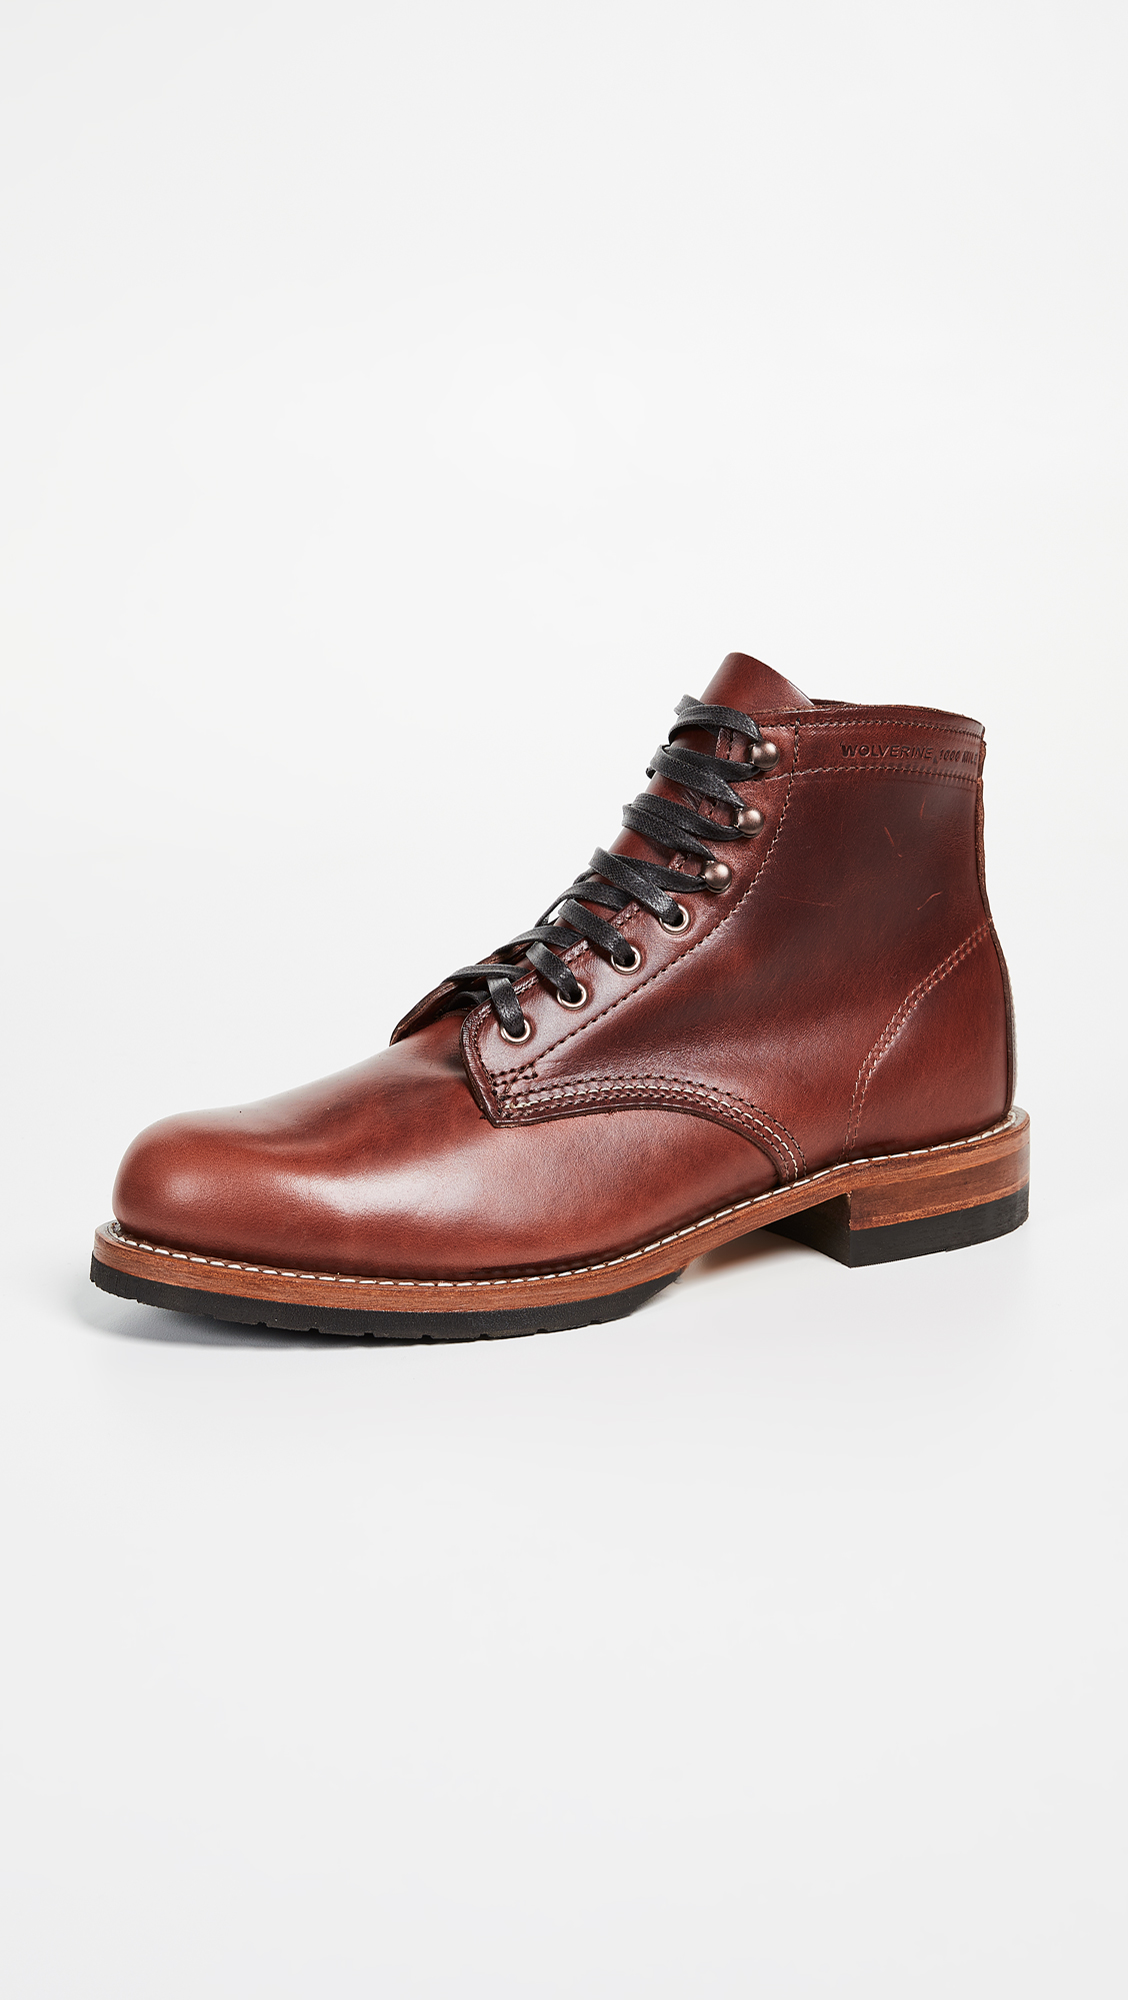 bee9626240a Wolverine 1000 Mile Evans Boots | EAST DANE